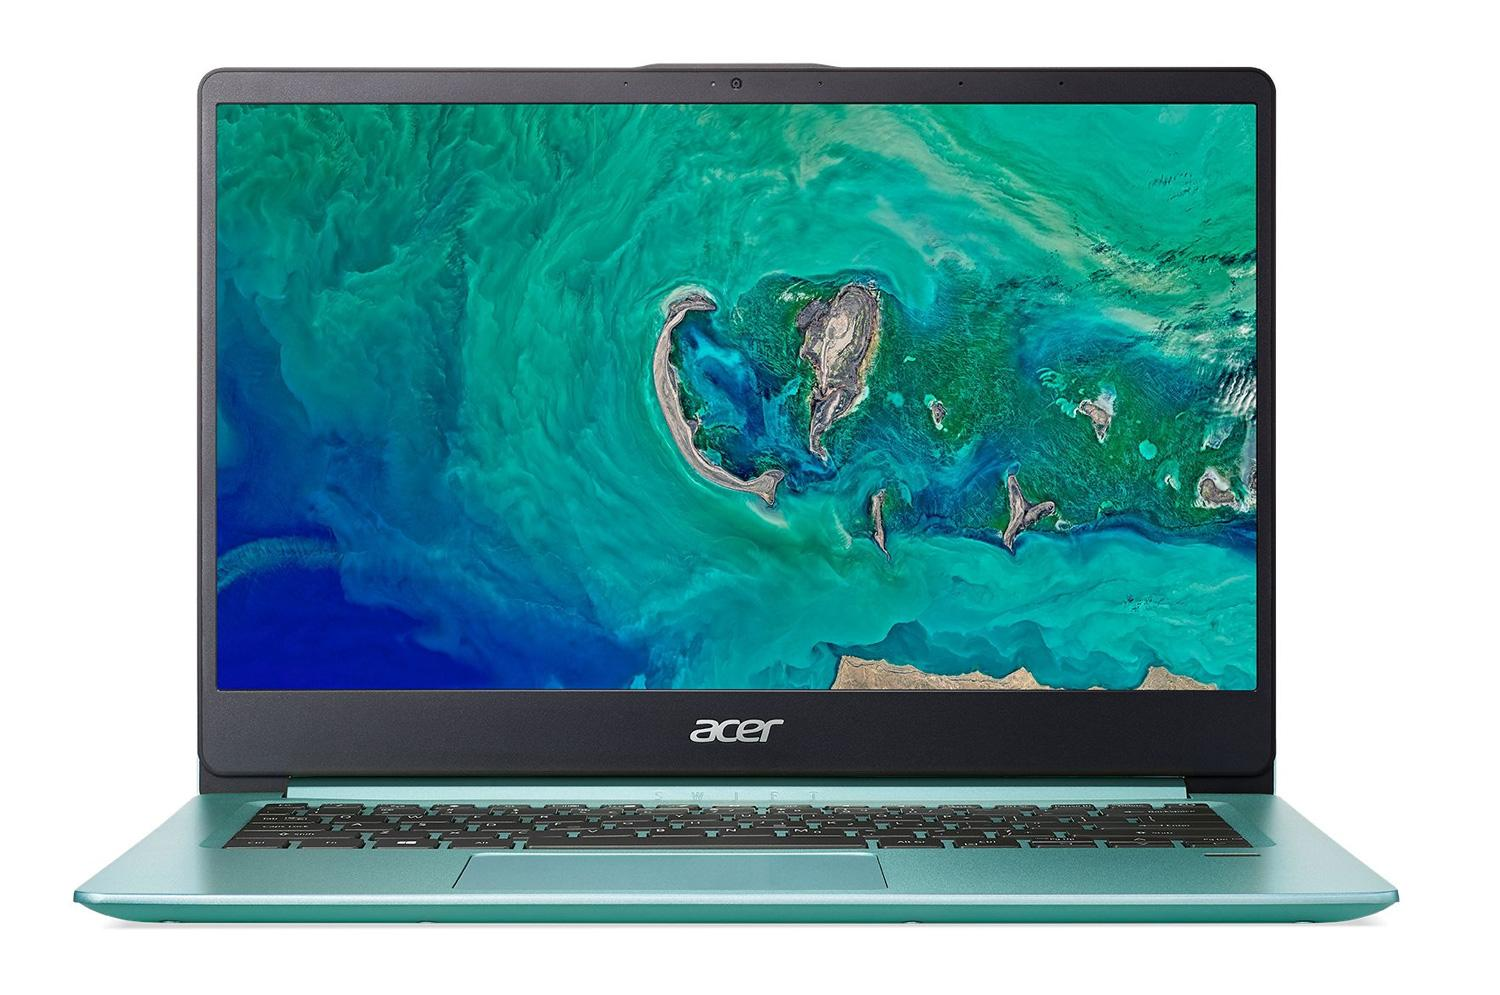 Ordinateur portable Acer Swift 1 SF114-32-P5EC Vert - Gemini Lake SSD IPS - photo 2